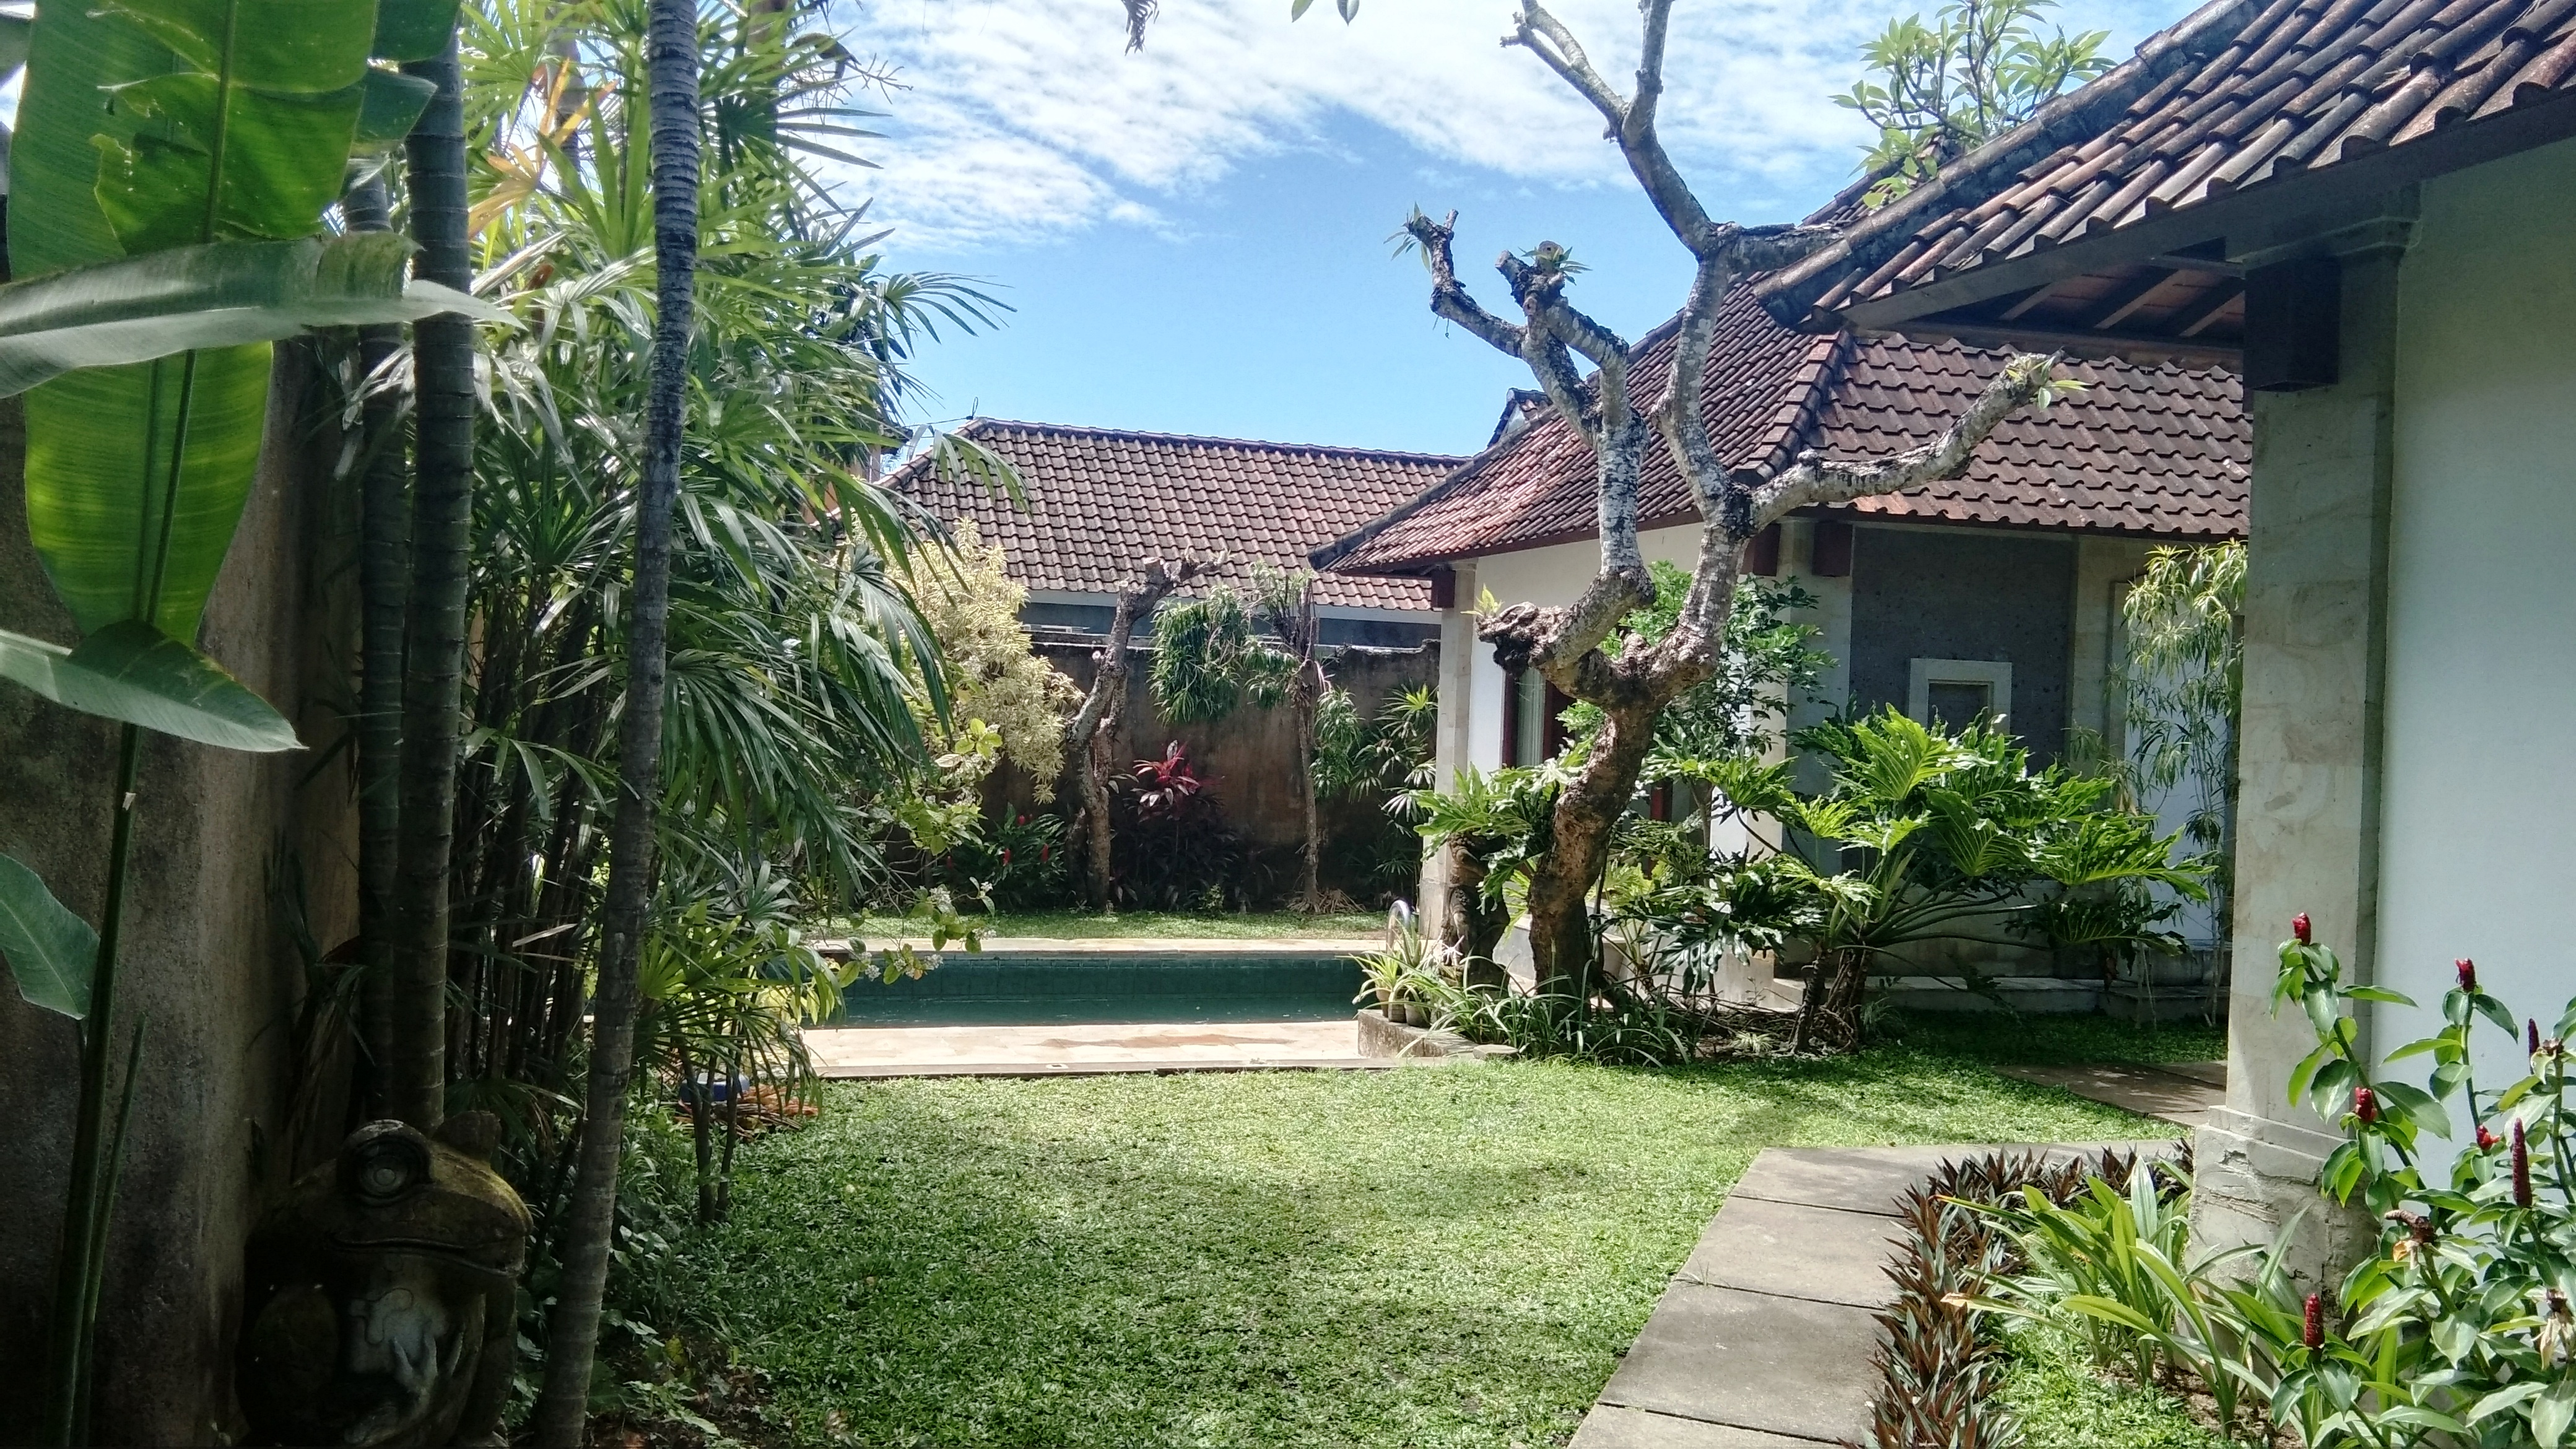 3 BEDROOMS VILLA WITH CLOSE LIVING ROOM IN SANUR - BALI